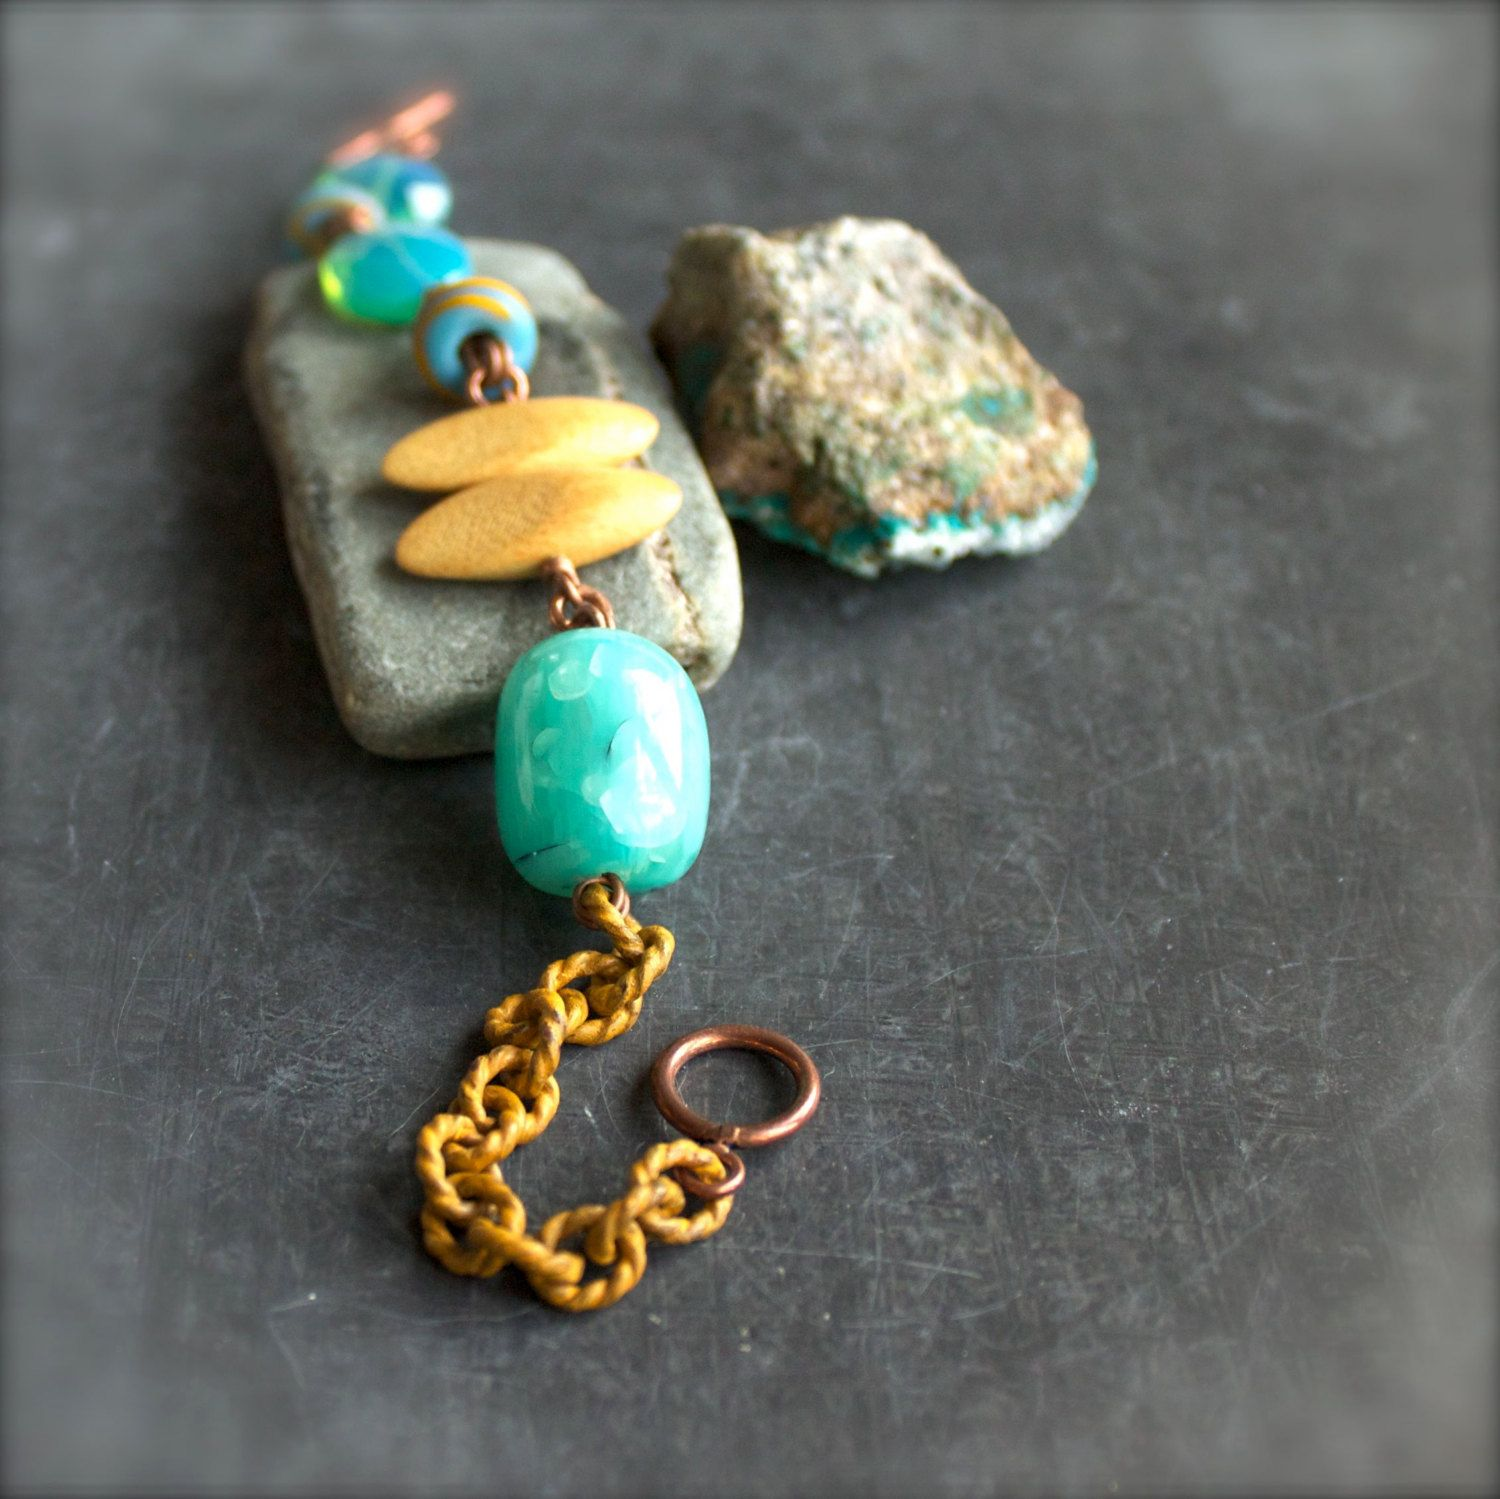 Turquoise Mustard Yellow Beadwork Chain Bracelet Wood Patina Beaded Tropical Summer Jewelry by balanced on Etsy https://www.etsy.com/listing/125383899/turquoise-mustard-yellow-beadwork-chain